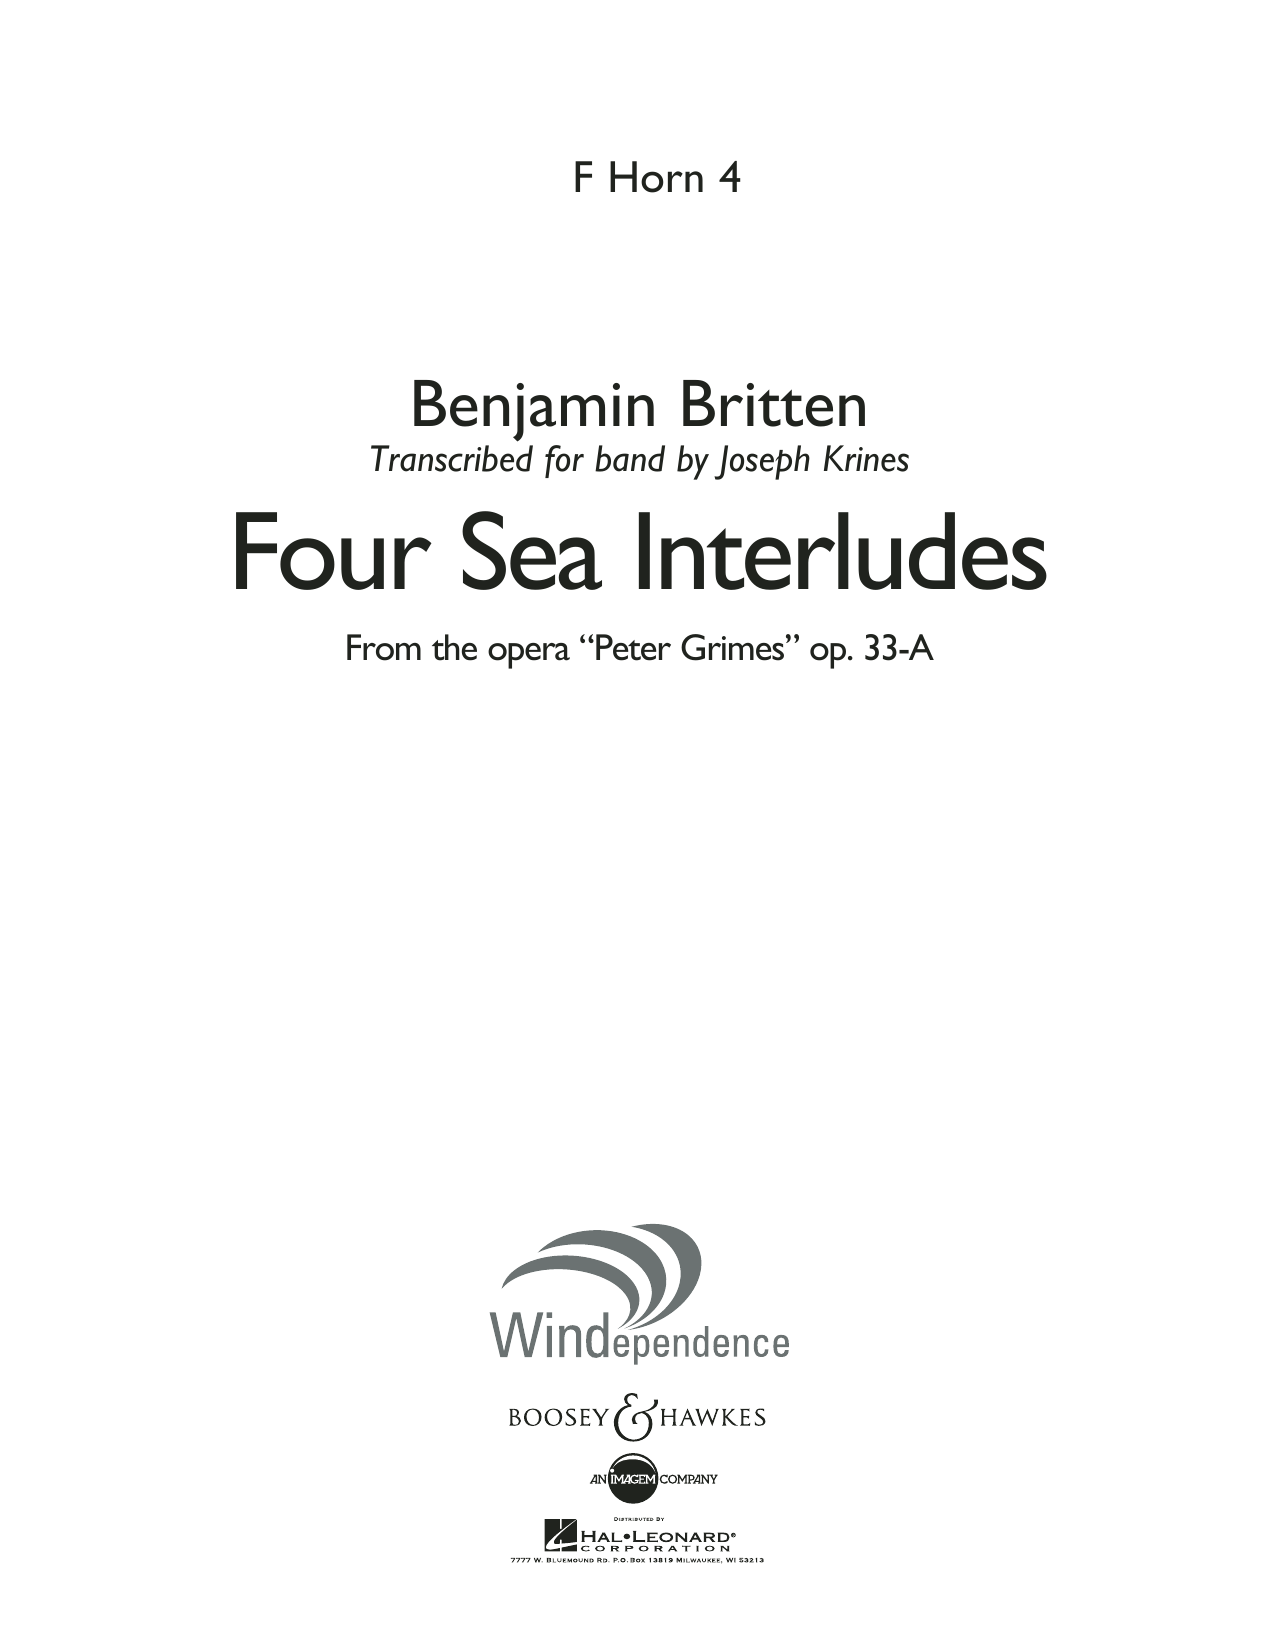 """Four Sea Interludes (from the opera """"Peter Grimes"""") - F Horn 4 (Concert Band)"""